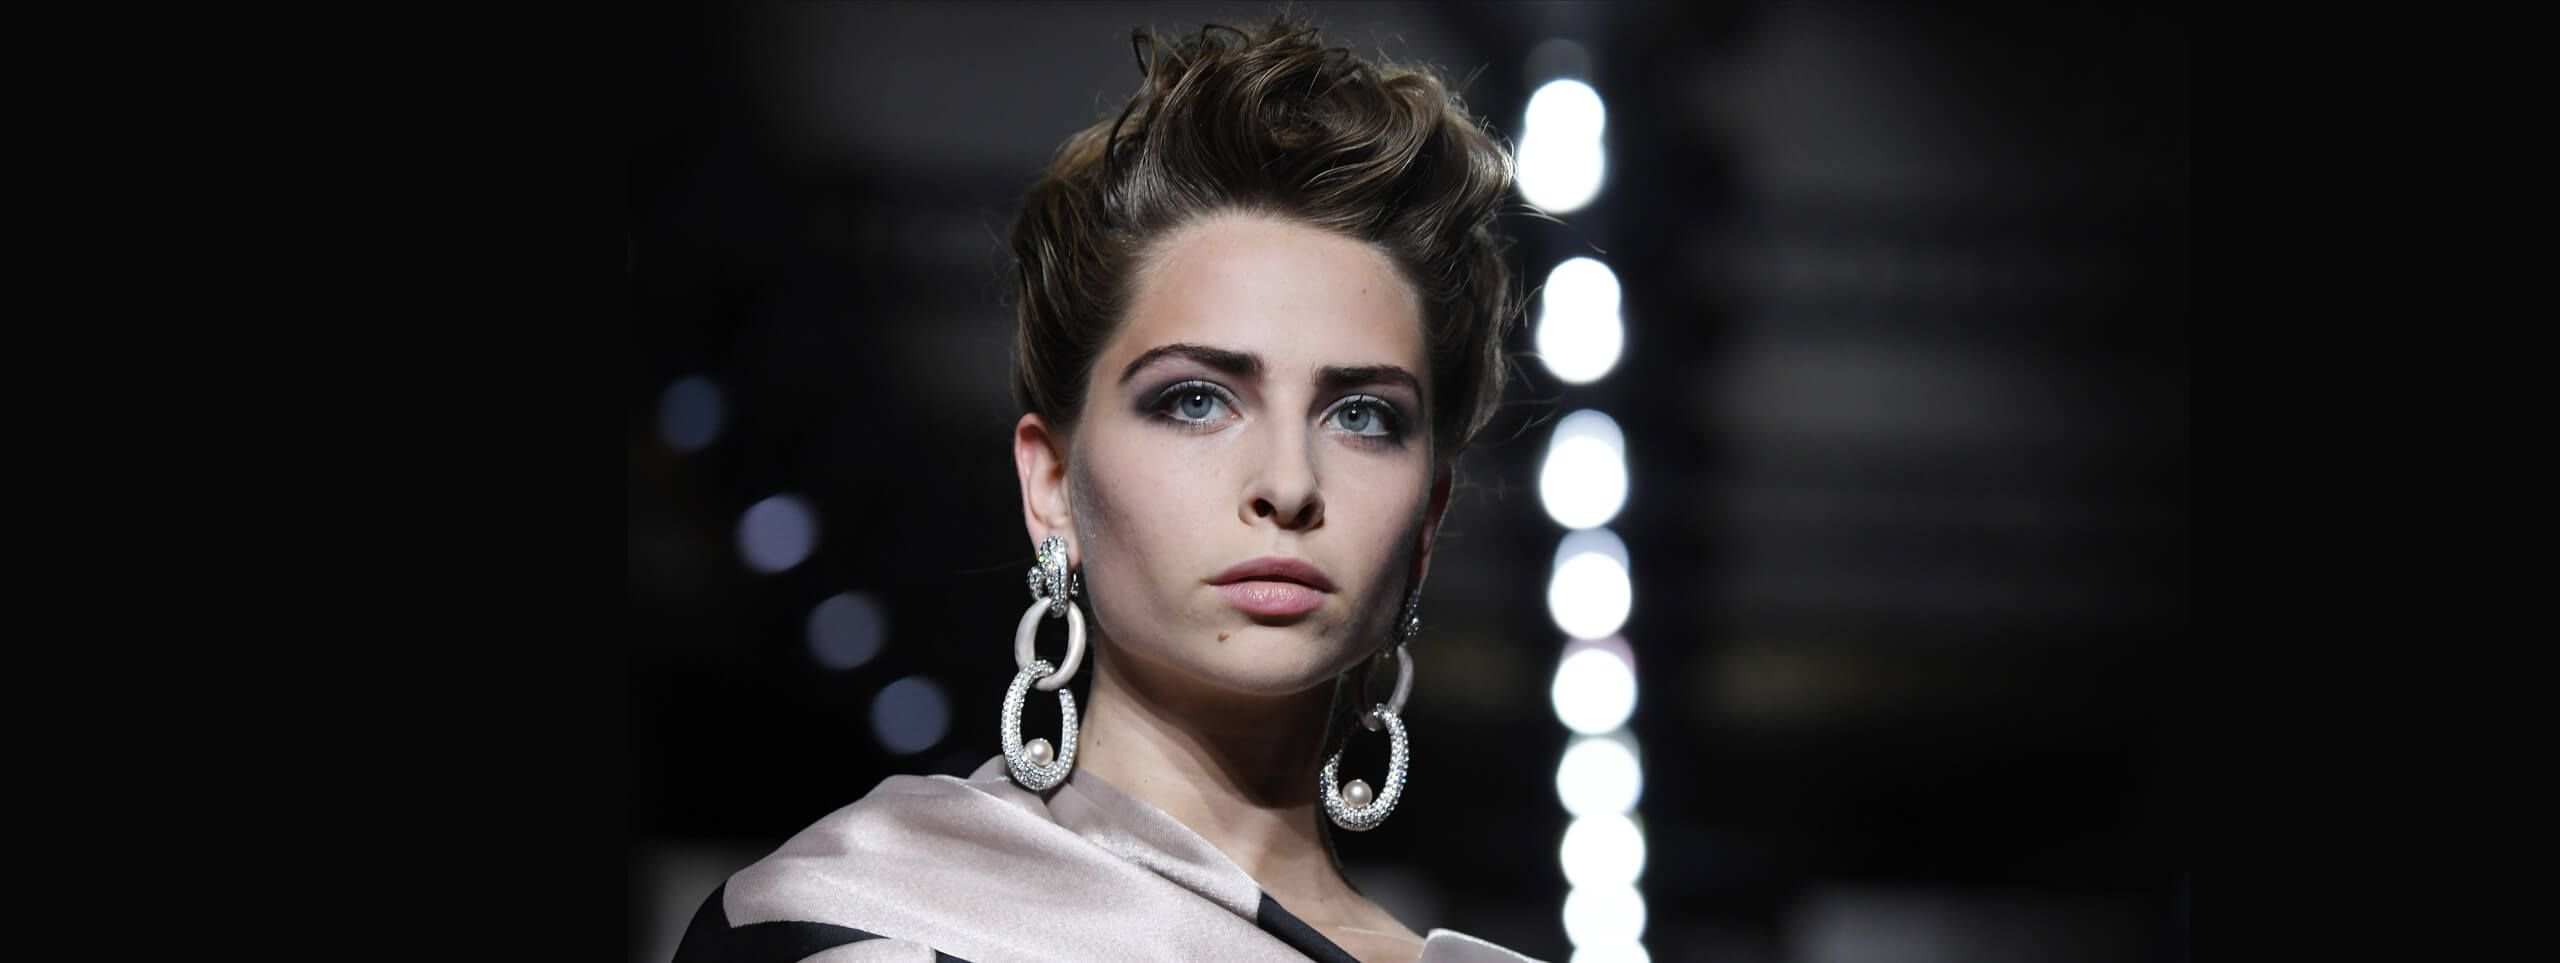 Model with short and wavy hairstyle